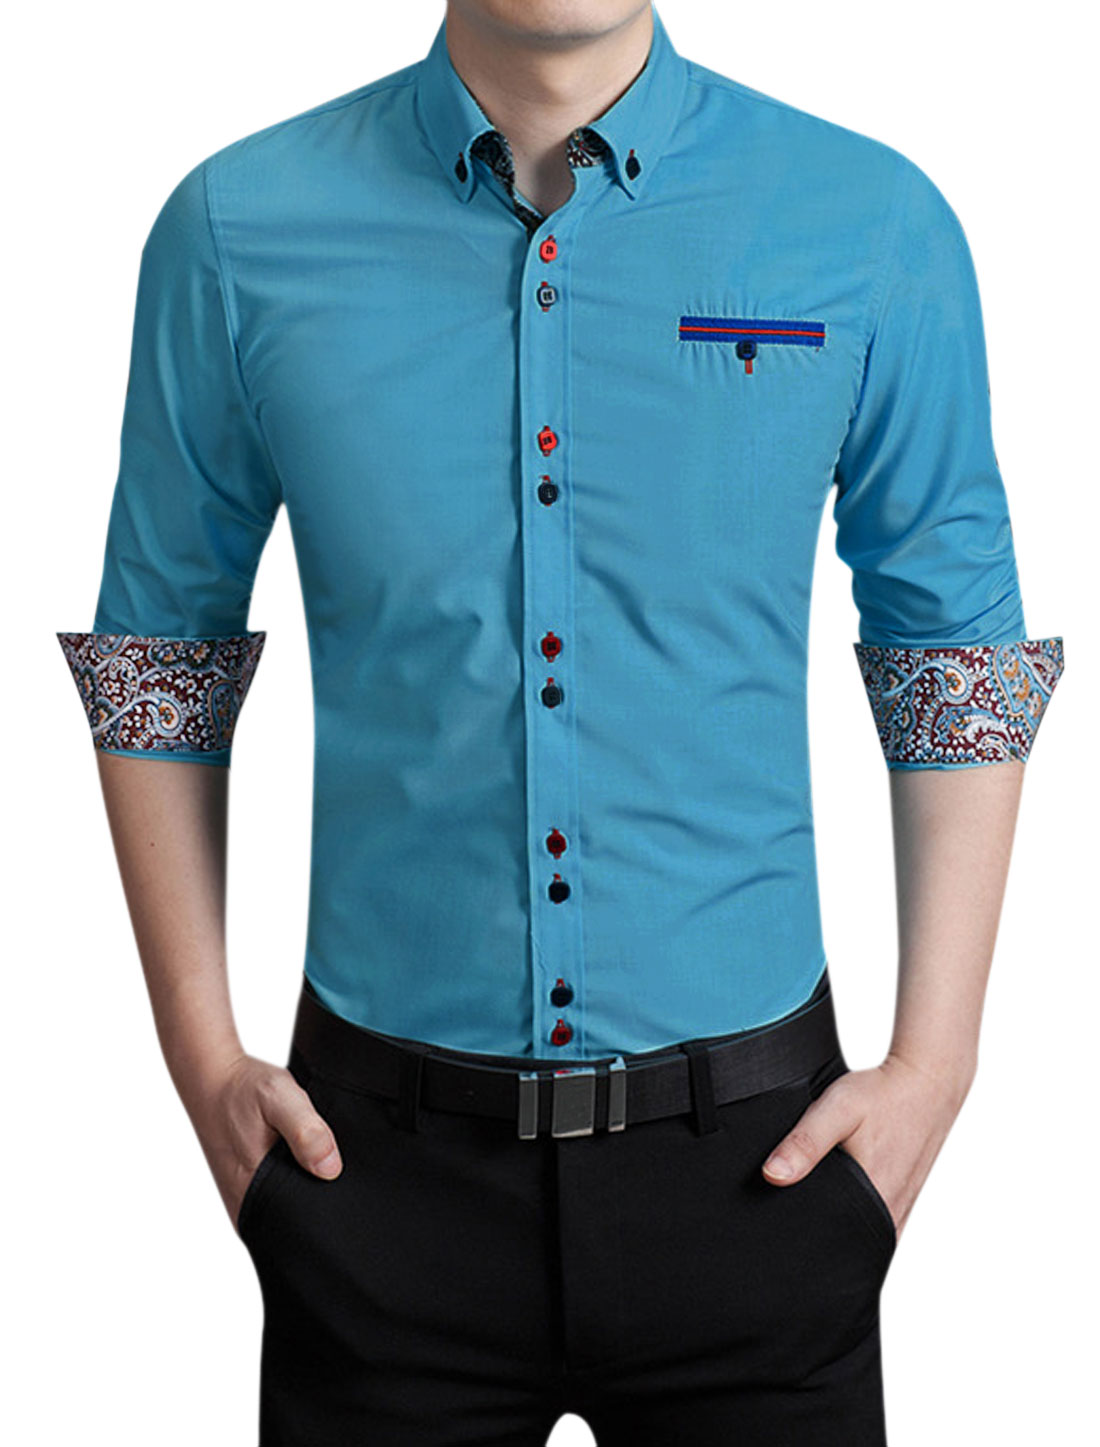 Men Long Sleeves Button Closure Leisure Shirt Turquoise M